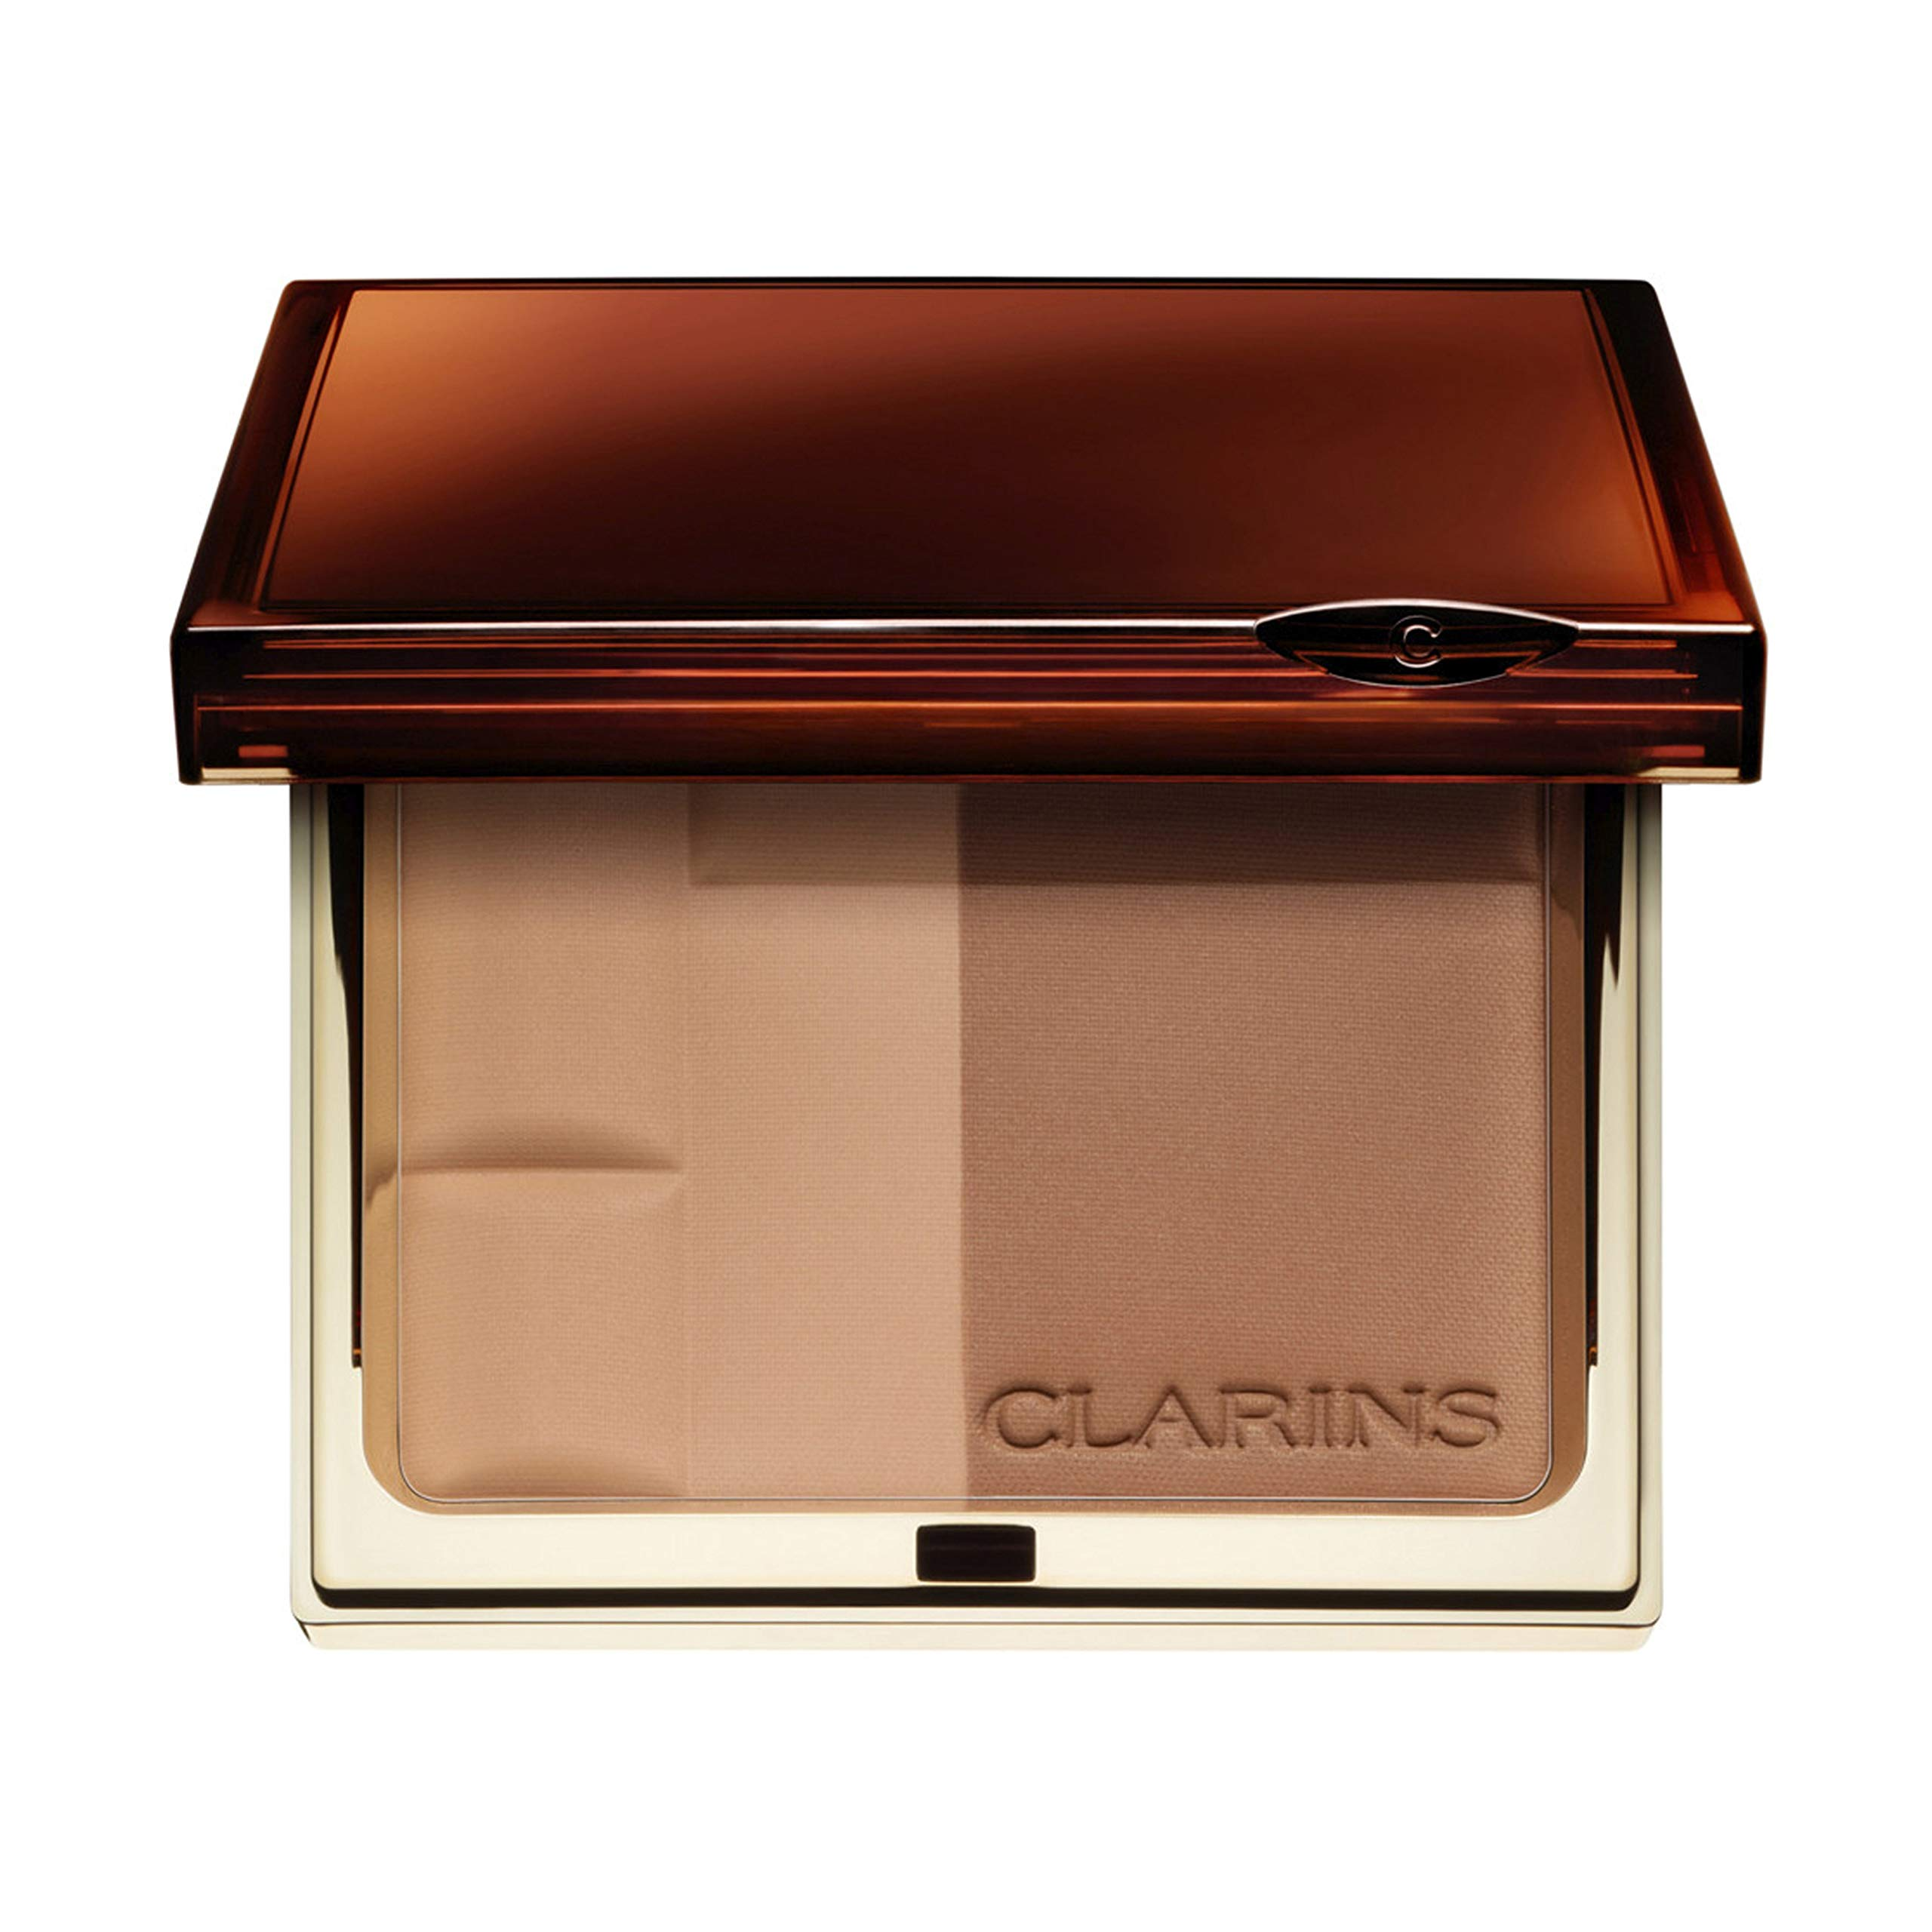 Clarins Bronzing Duo Mineral Powder Compact SPF 15-02 Medium 10g/0.35oz